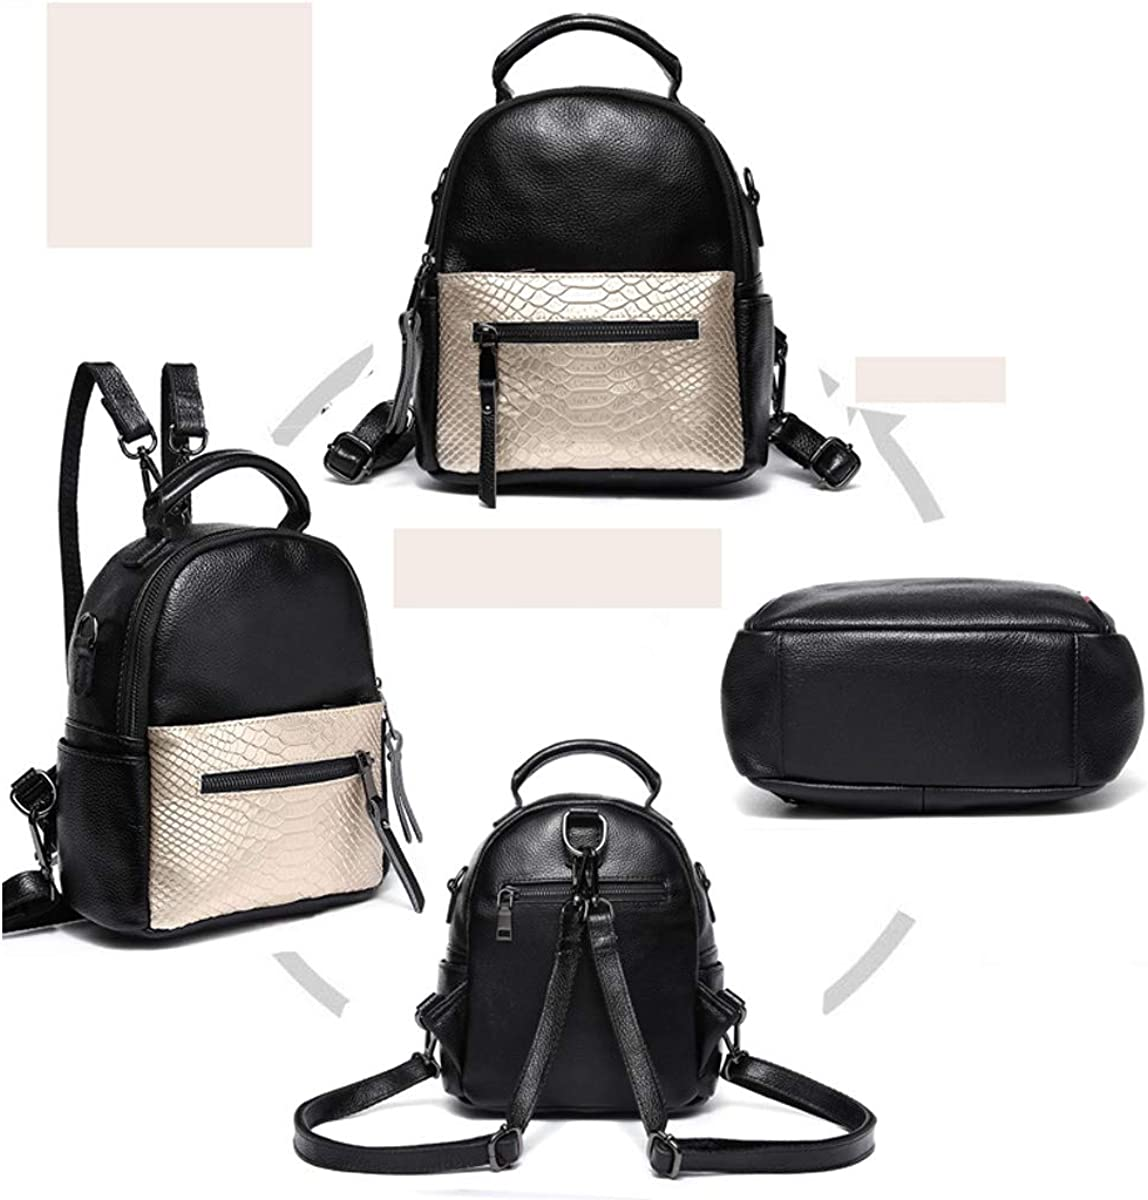 for Women /& Men Black ZHICHUANG Girls Multipurpose Backpack for Everyday Travel//Outdoor//Travel//School//Work//Fashion//Leisure Cowhide Stylish and Cute